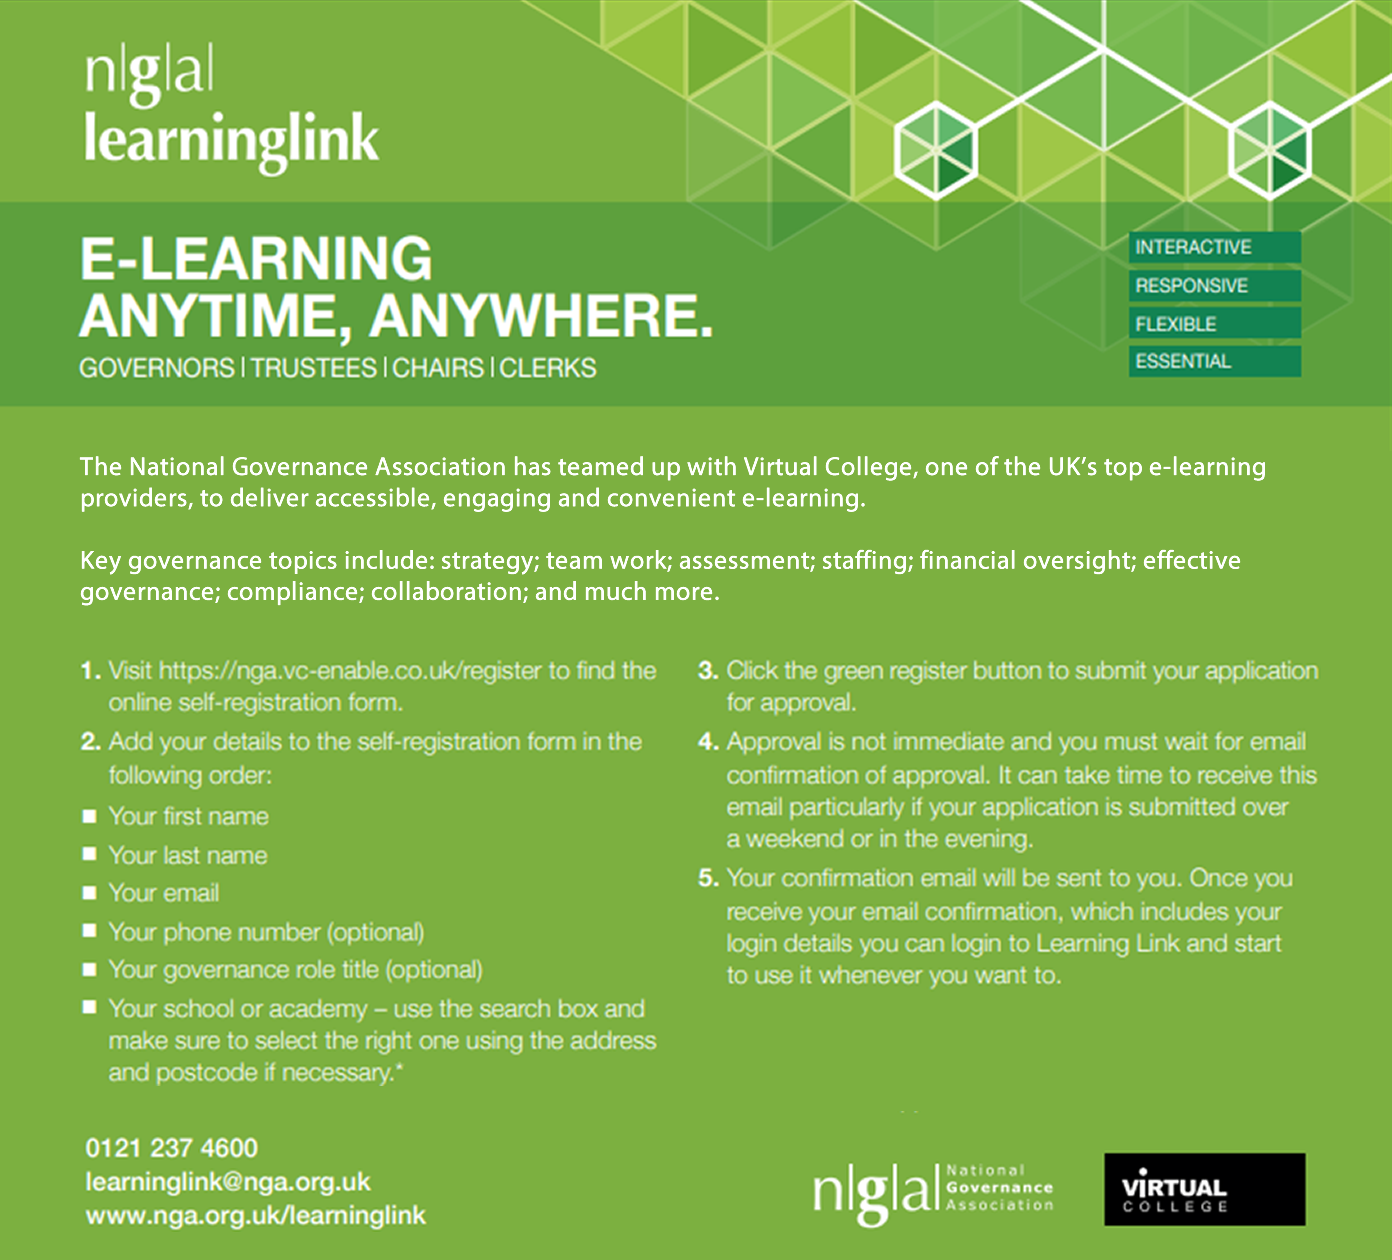 NGA Learning Link